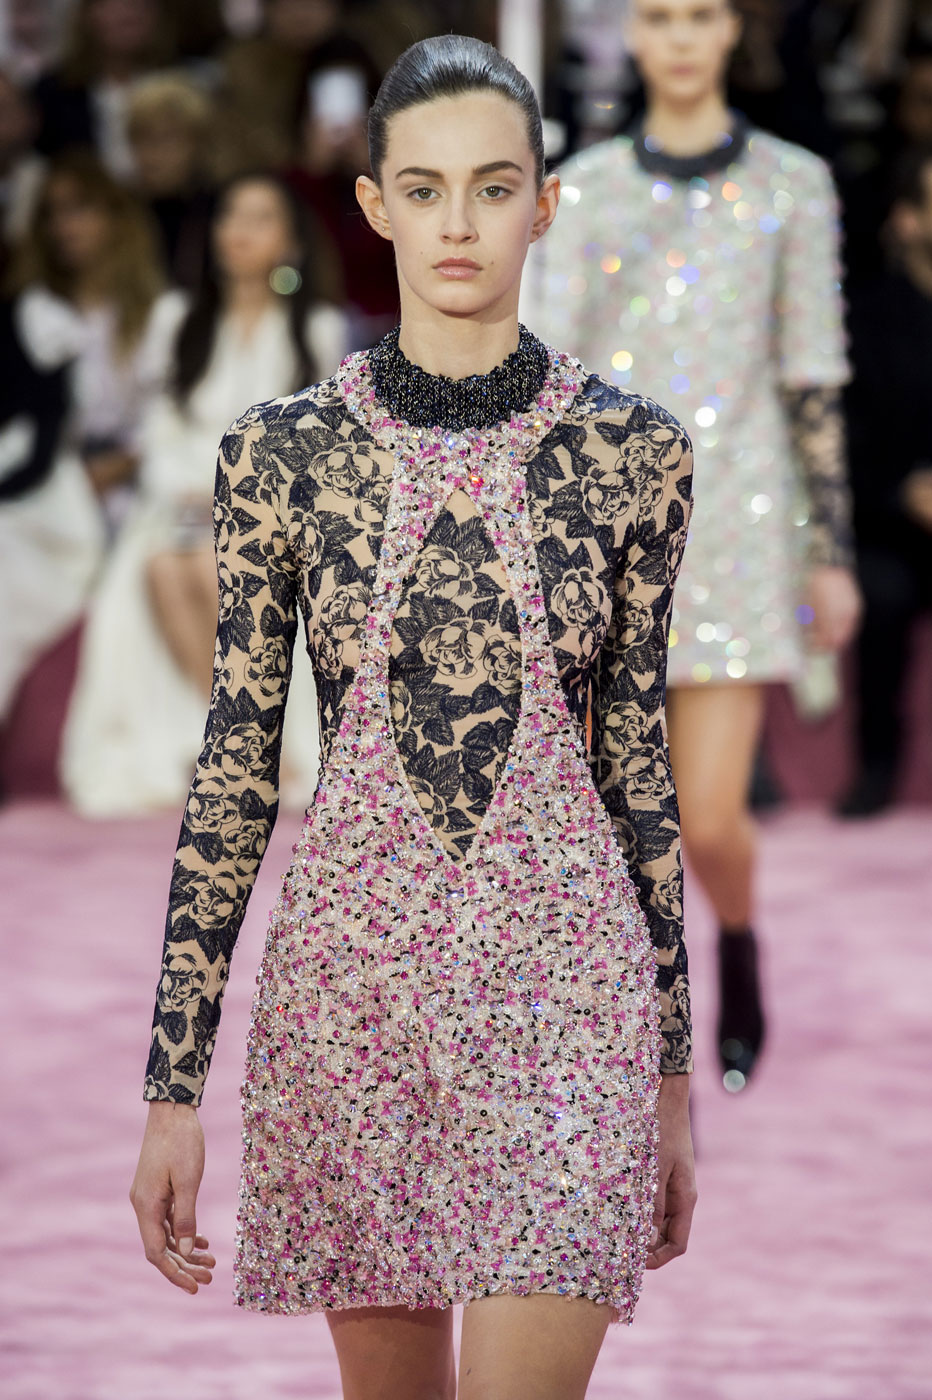 Christian-Dior-fashion-runway-show-haute-couture-paris-spring-summer-2015-the-impression-054